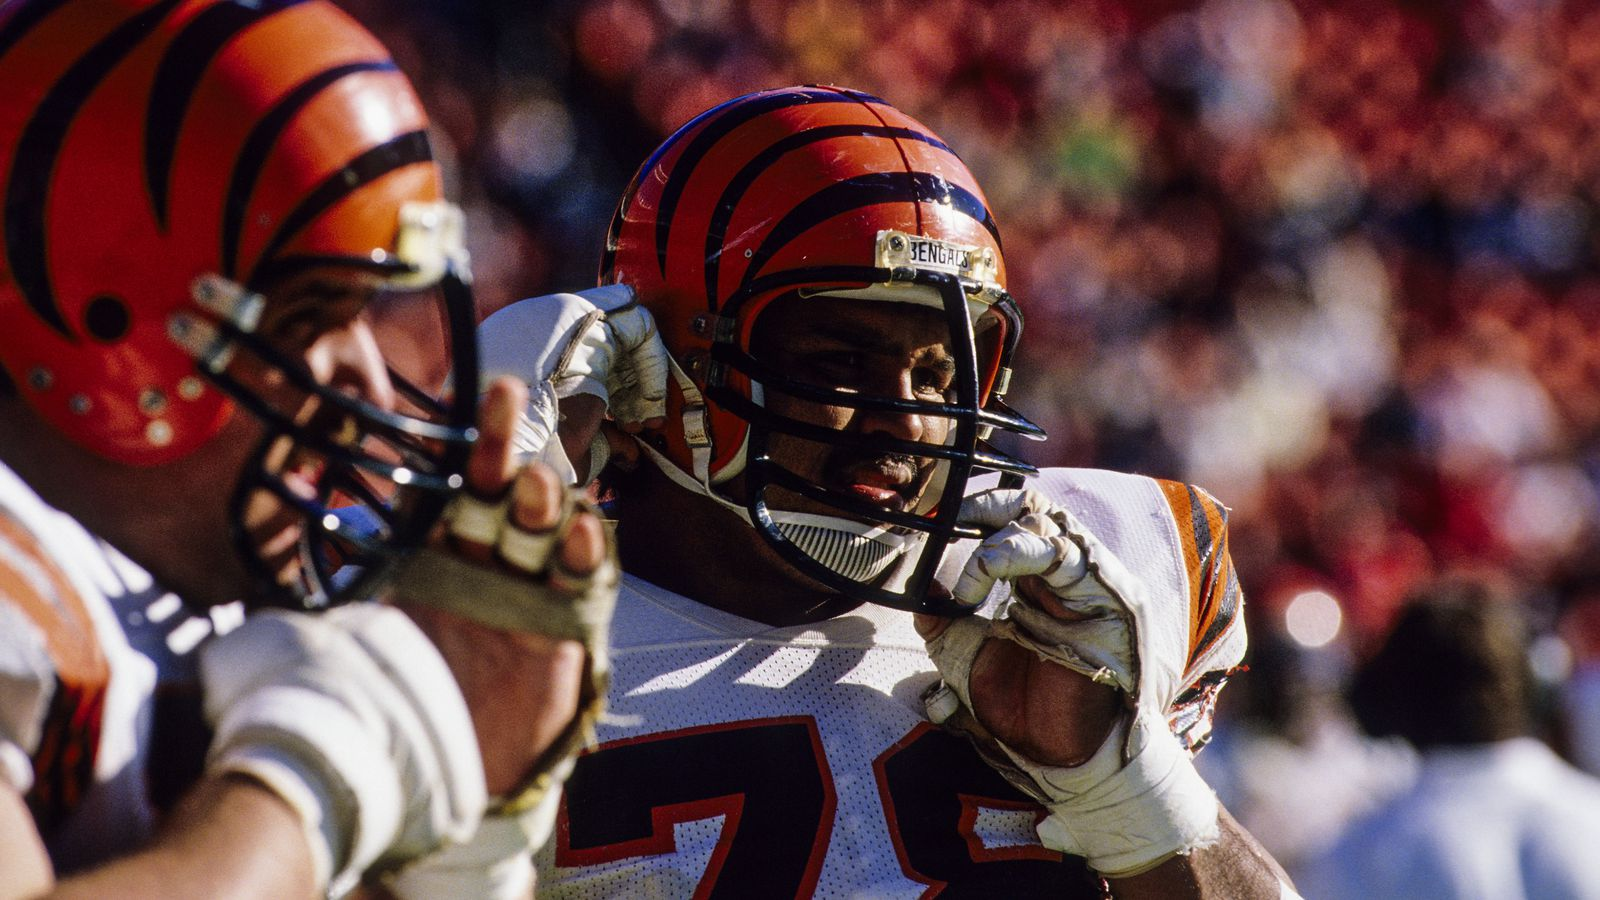 Bengals should retire four jerseys - Cincy Jungle